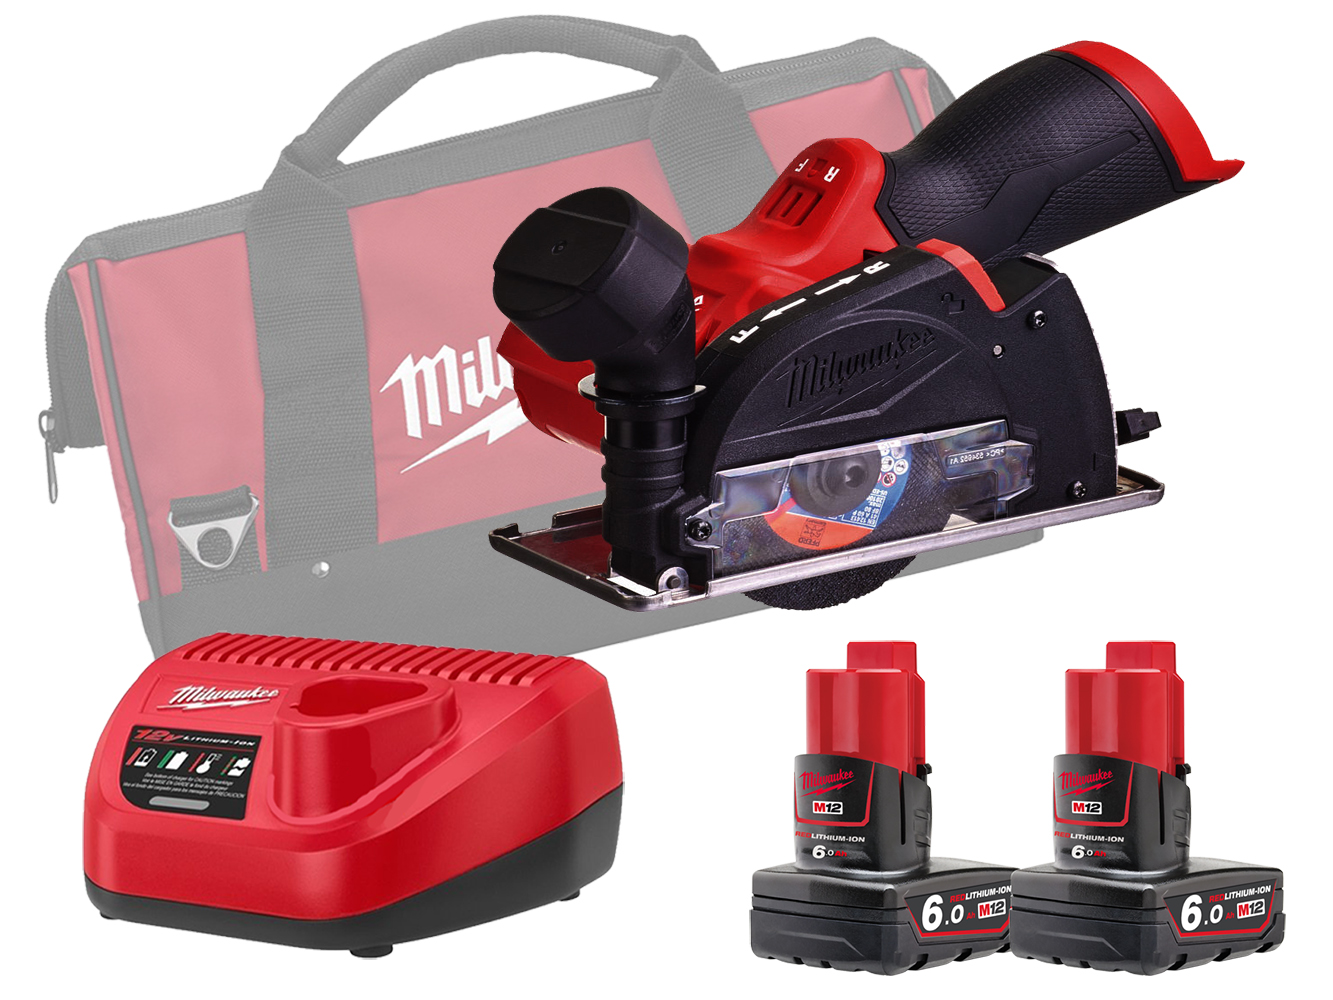 Milwaukee M12FCOT 12V Fuel Sub Compact Multi-Material Cut-Off Tool - 6.0Ah Pack